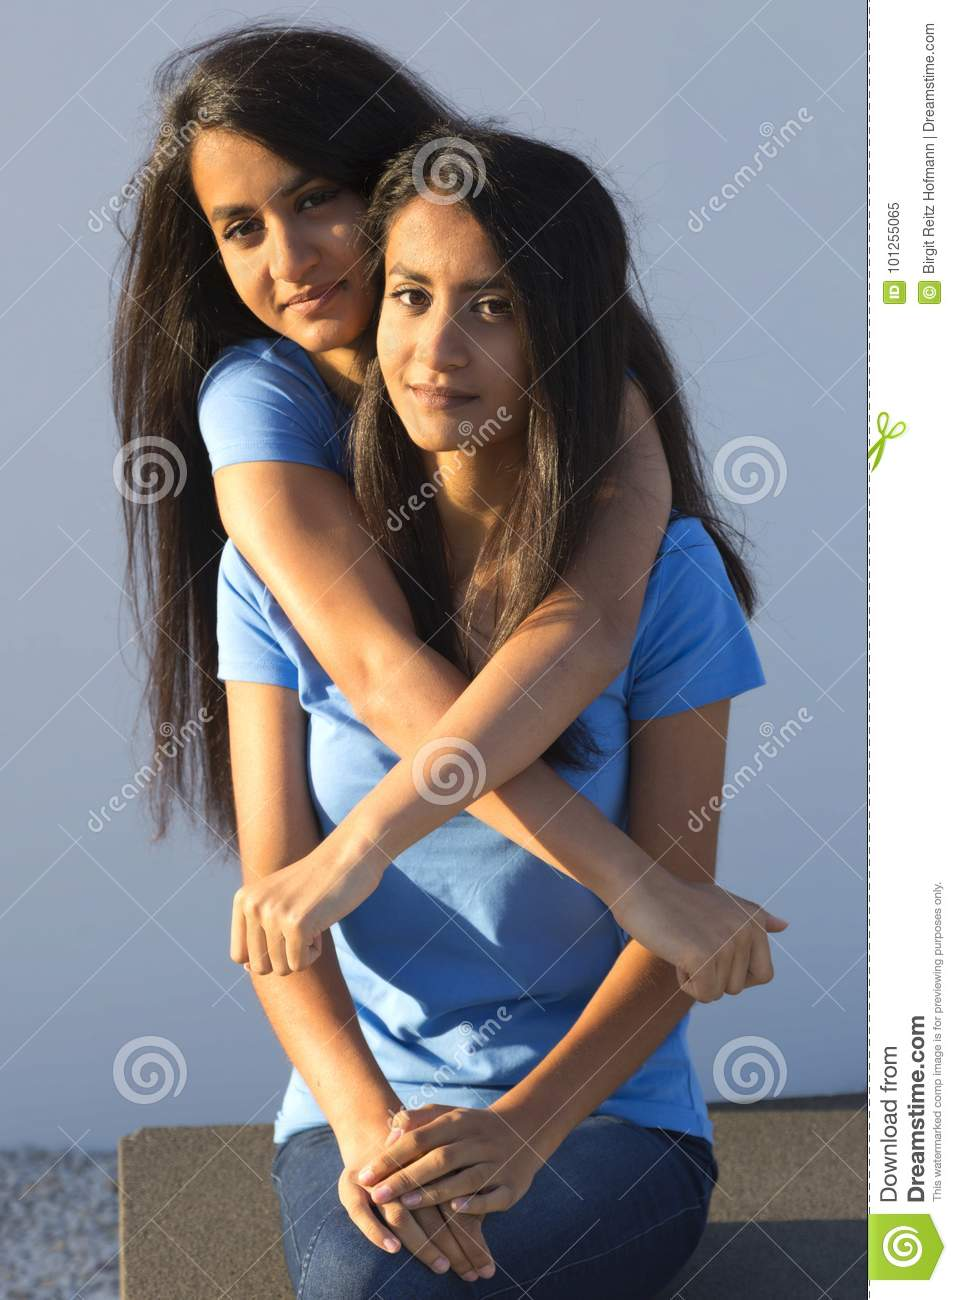 Female Twins Embrace Each Other Stock Image Image Of Women Love